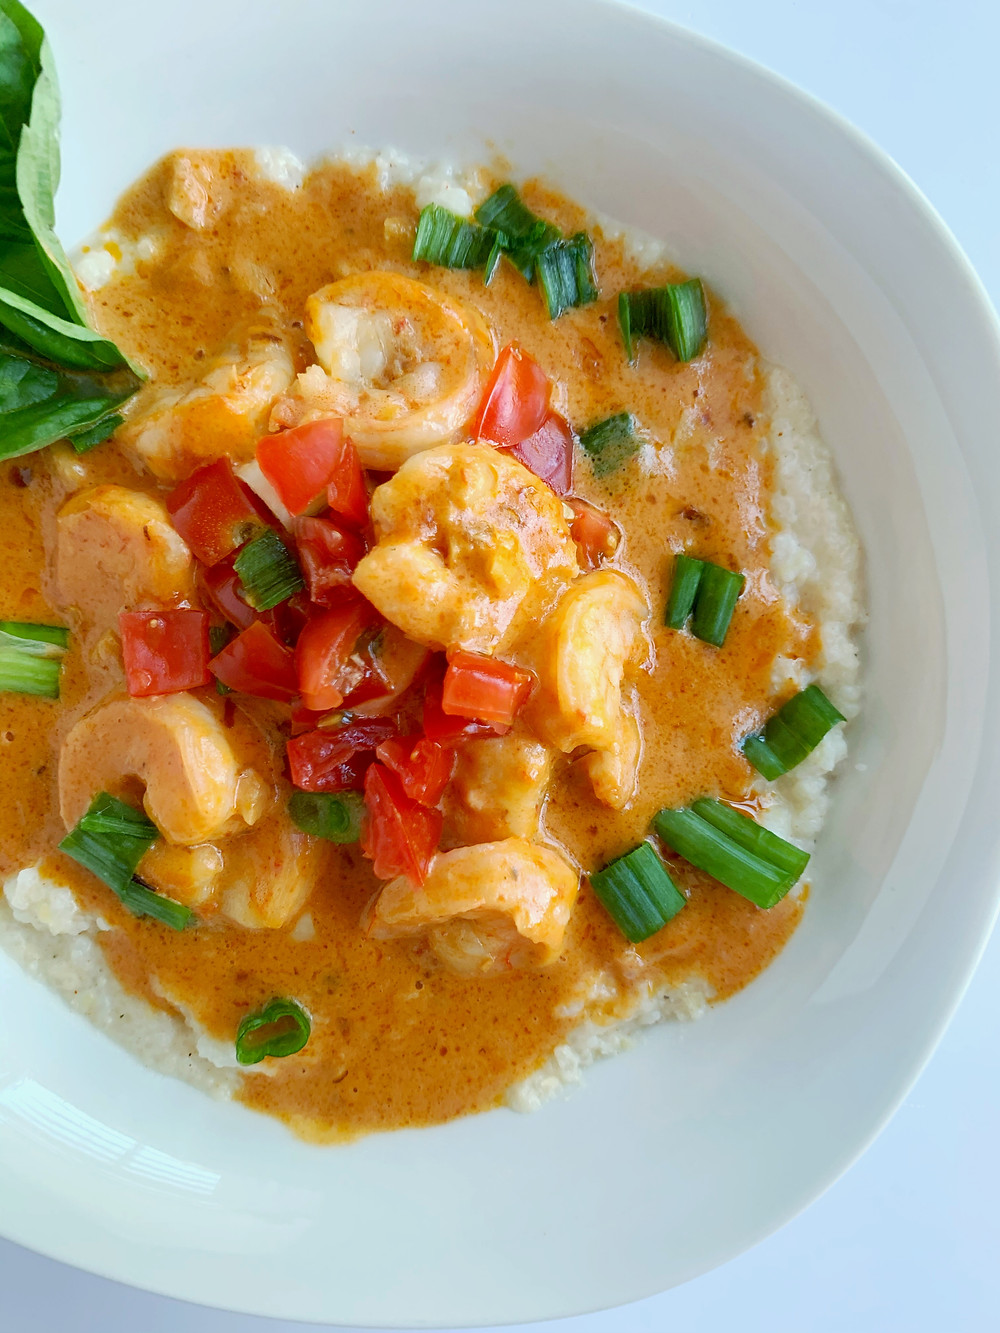 overhead shot of cajun shrimp and grits with tomato sauce, a basil leaf, and green onions